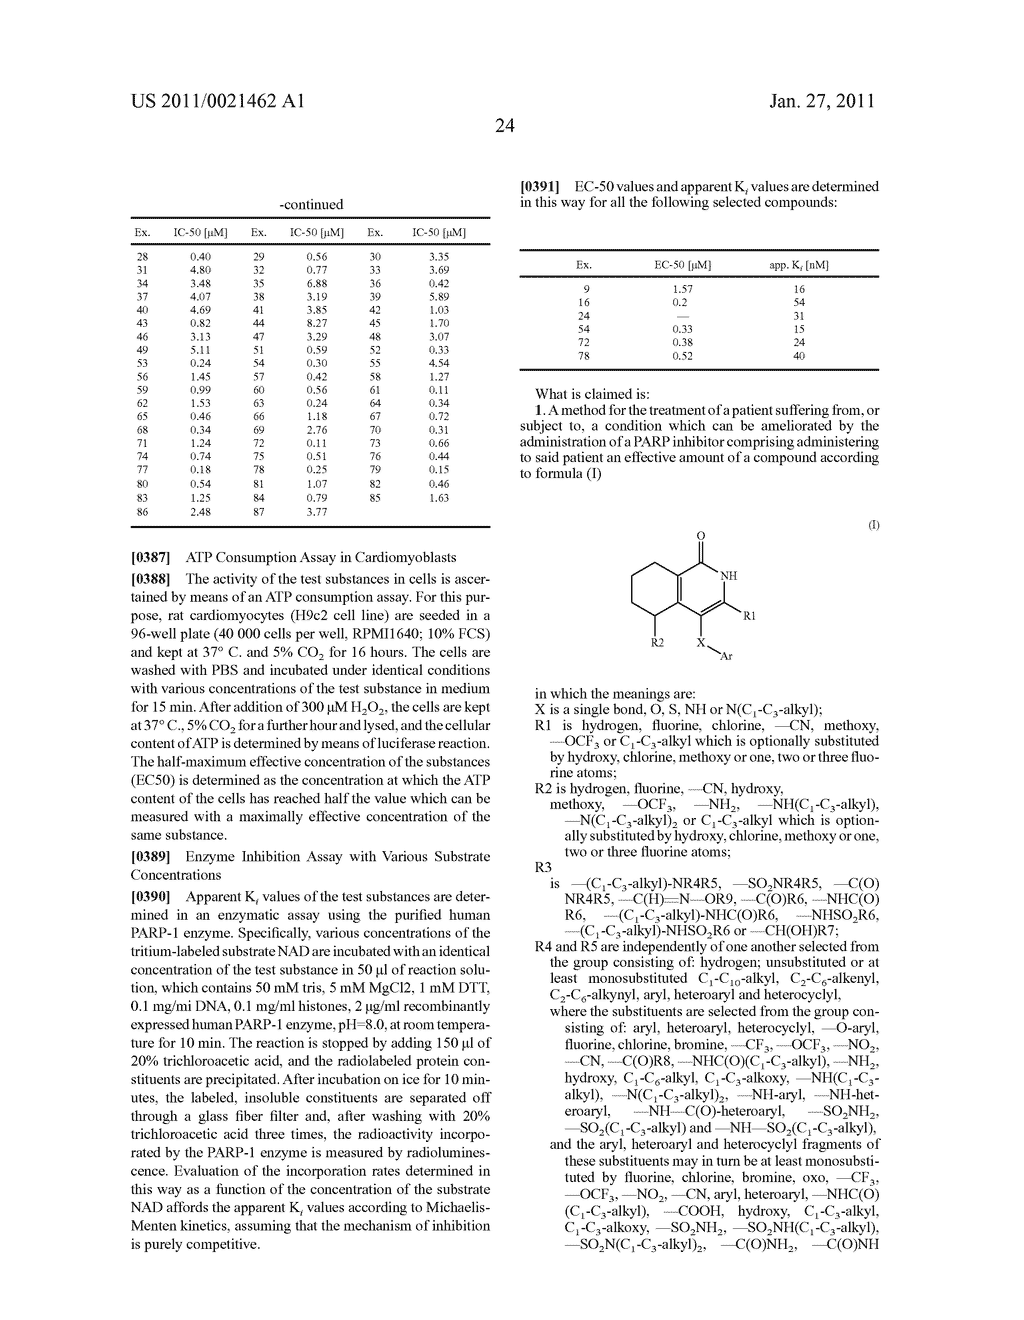 SUBSTITUTED TETRAHYDRO-2H-ISOQUINOLIN-1-ONE DERIVATIVES, AND METHODS FOR THE PRODUCTION AND USE THEREOF - diagram, schematic, and image 25